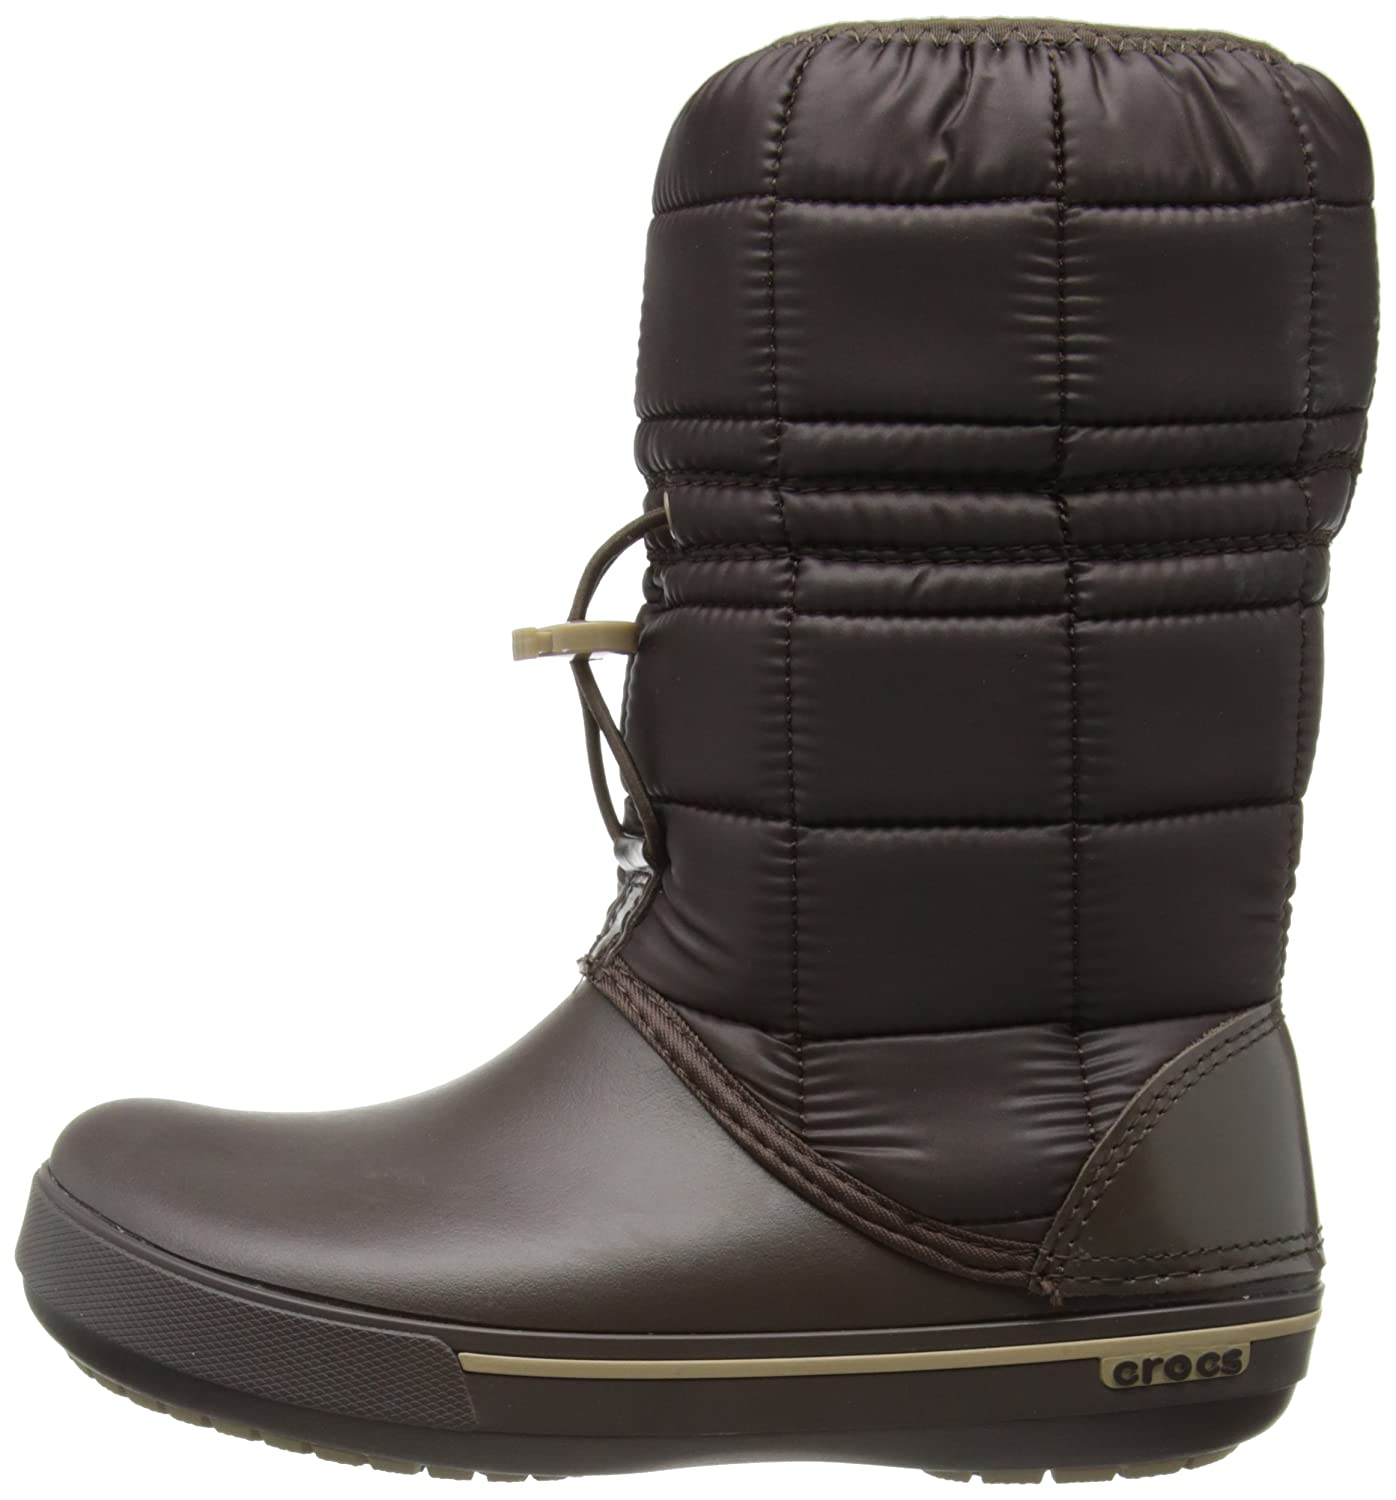 Winter Puff Boot Women, Mujer Bota, Negro (Black/Charcoal), 36-37 EU Crocs